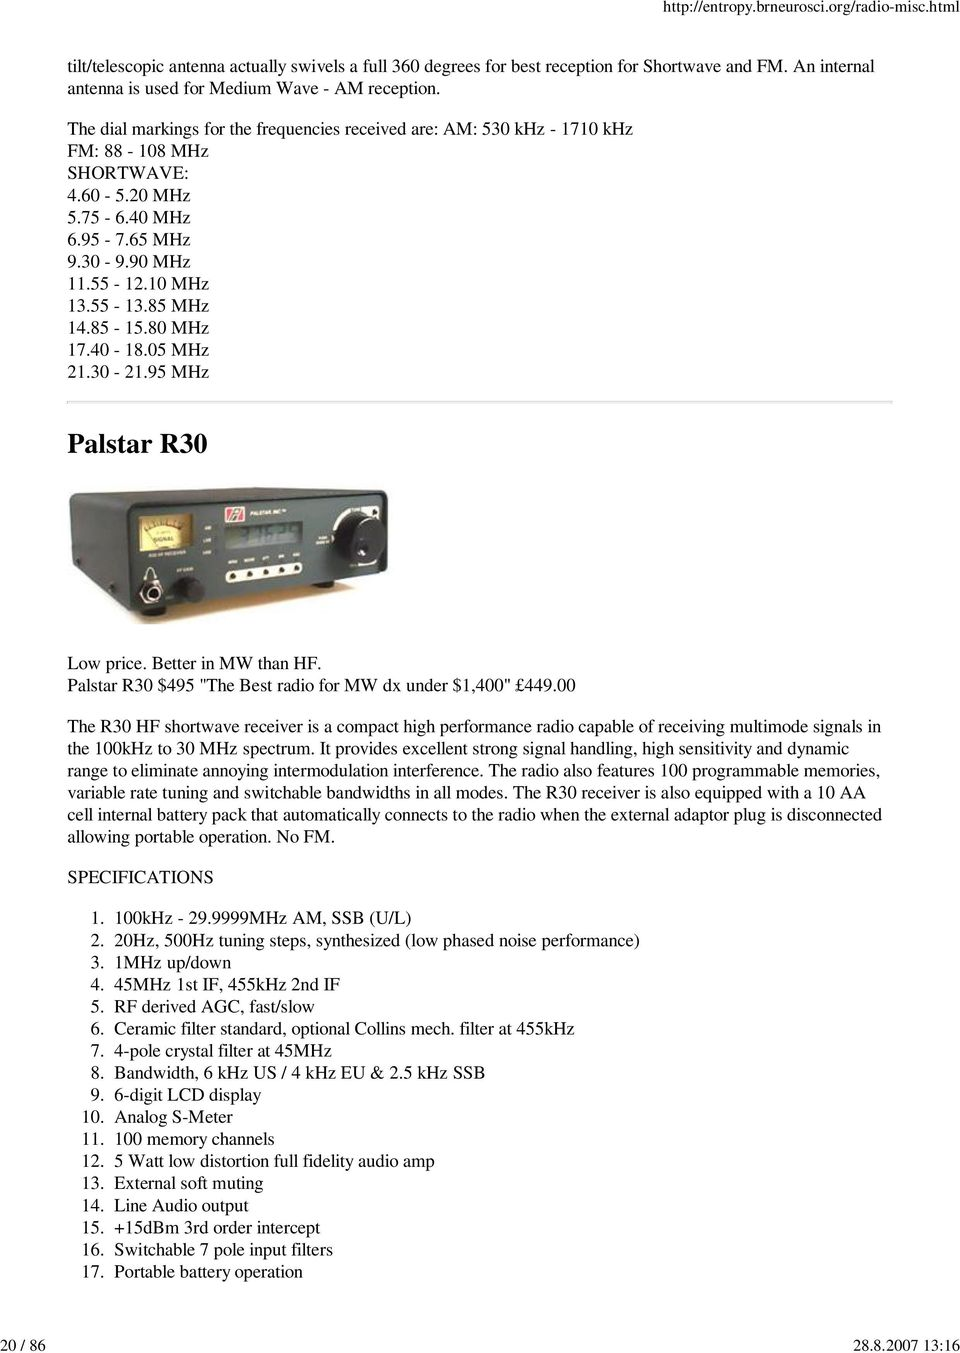 Specifications Of Shortwave Radios From Various Manufacturers Pdf Active Antenna Aa 7 Hf Vhf Uhf 3 3000mhz 80 Mhz 1740 1805 2130 2195 Palstar R30 Low Price Better